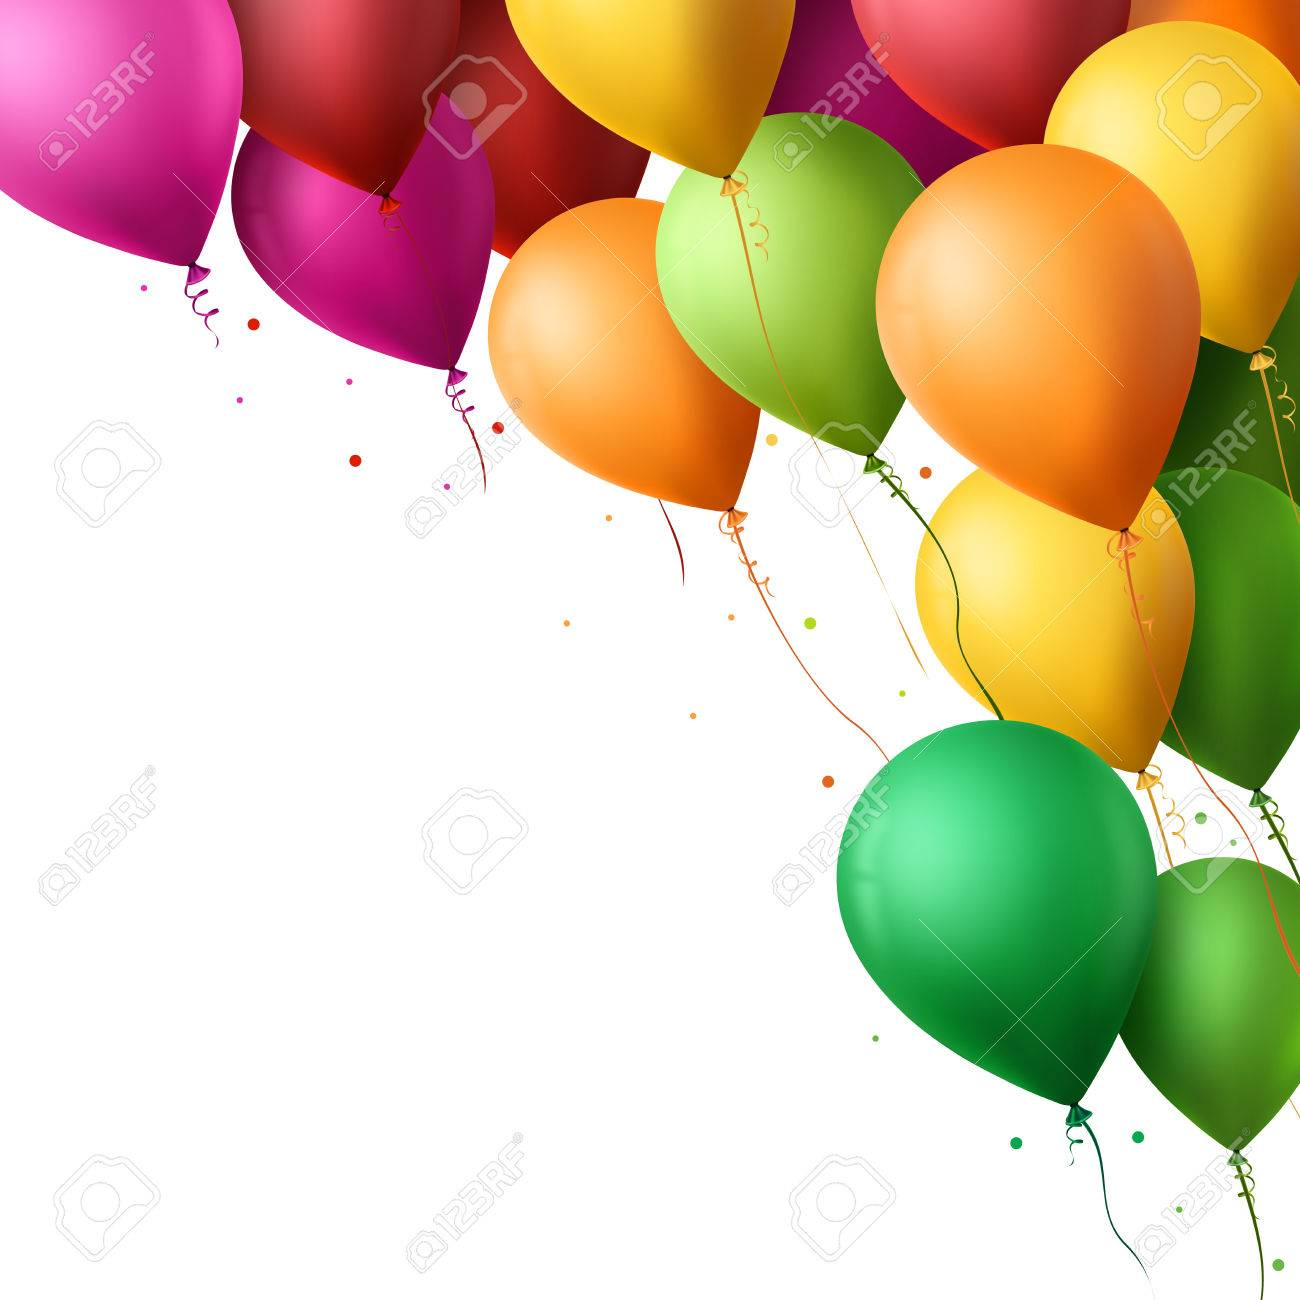 3d Realistic Colorful Happy Birthday Balloons Flying for Party and Celebrations With Space for Message Isolated in White Background. Vector Illustration - 47934305